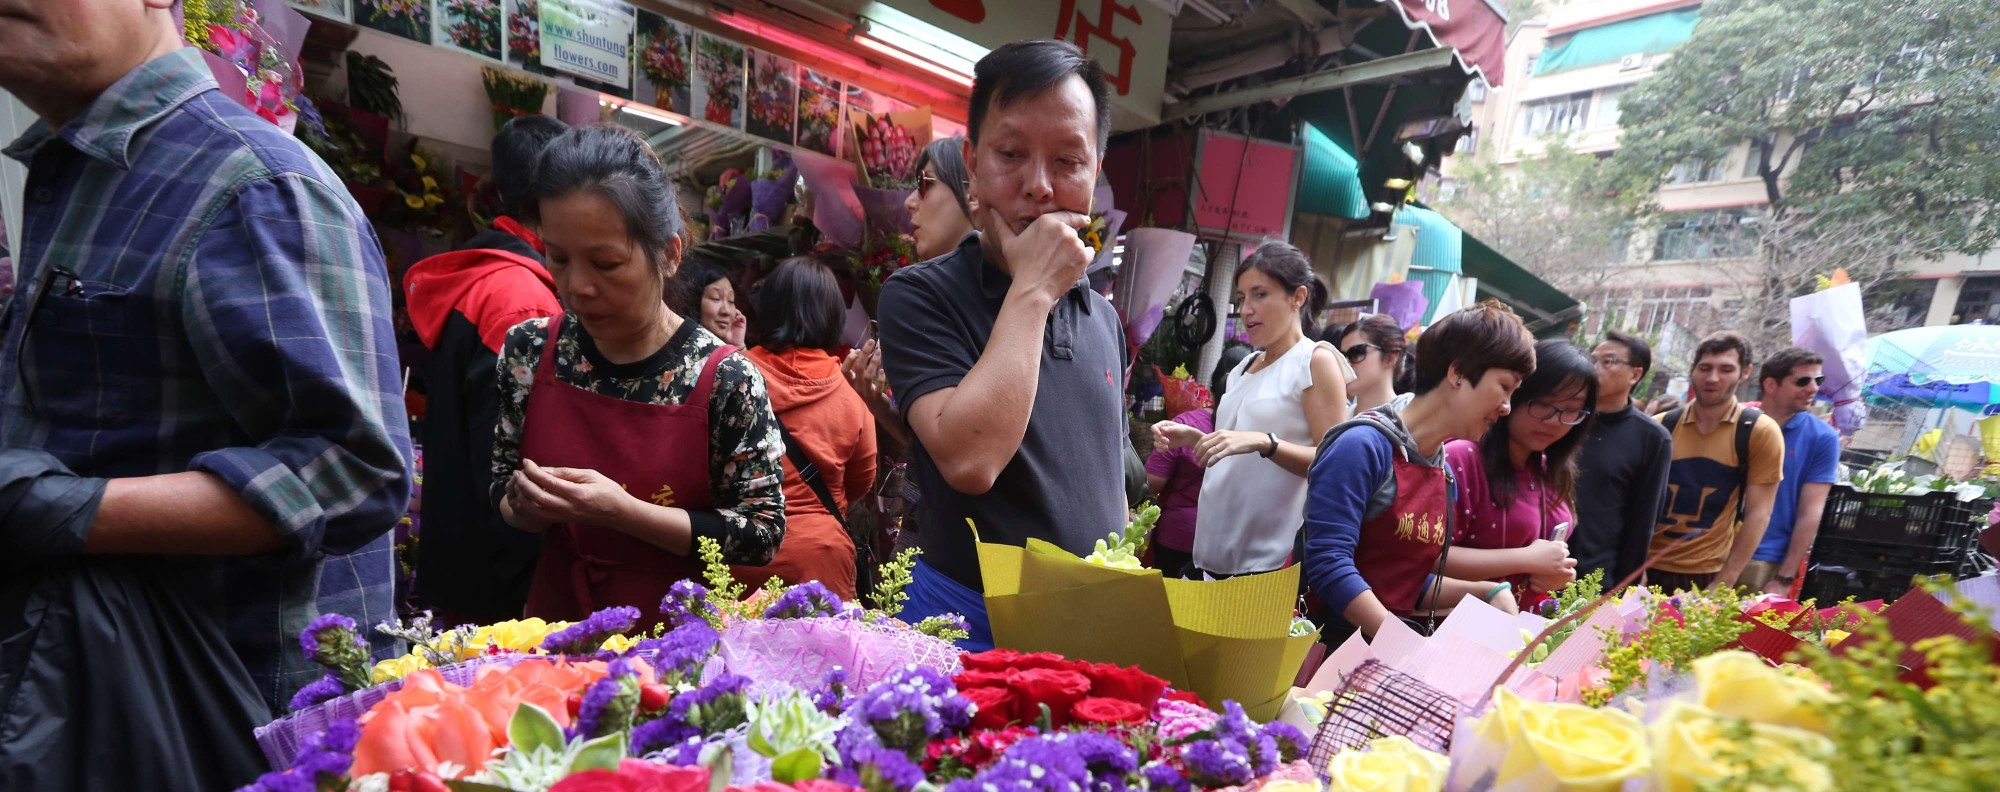 Valentine's Day flowers in Mong Kok. Photo: Nora Tam